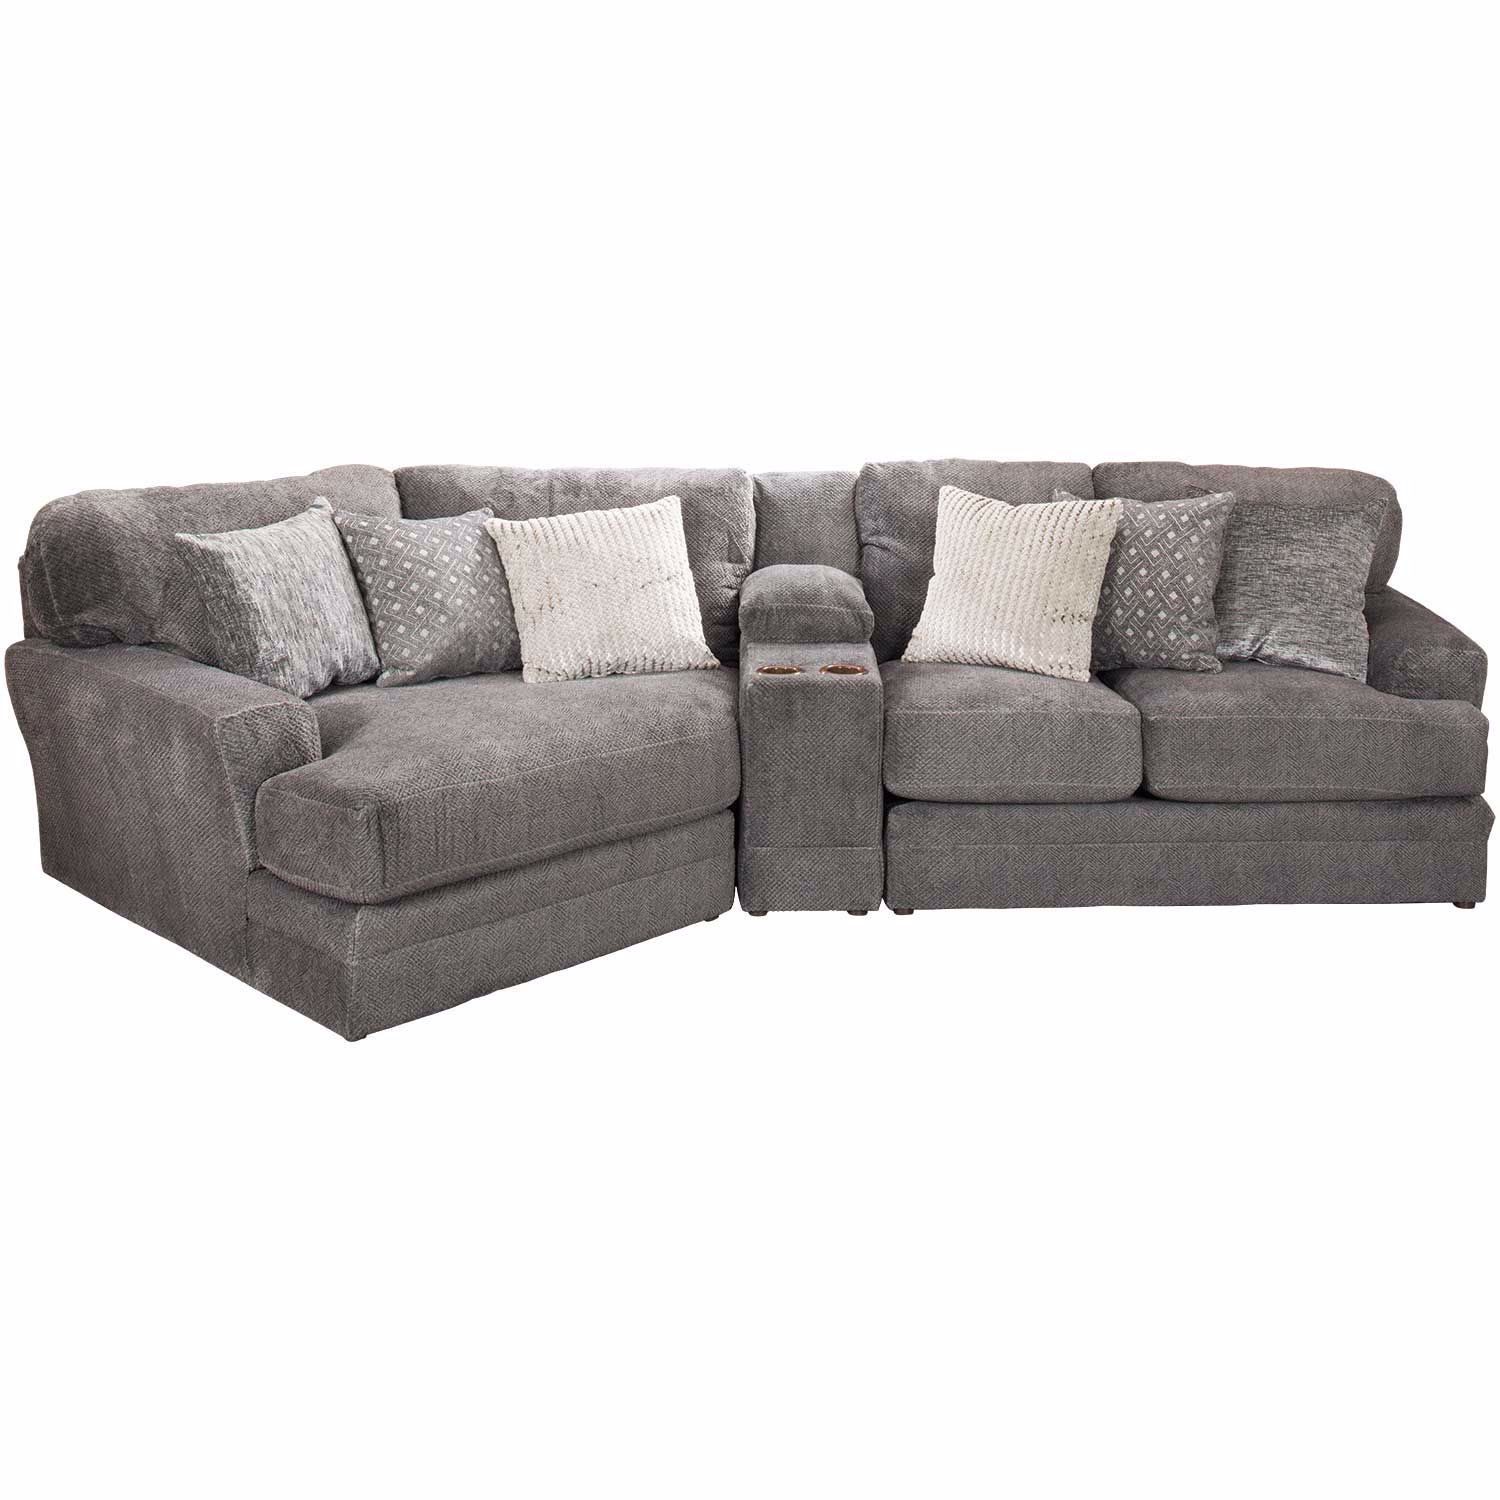 Picture of Mammoth 3 Piece Sectional with LAF Wedge